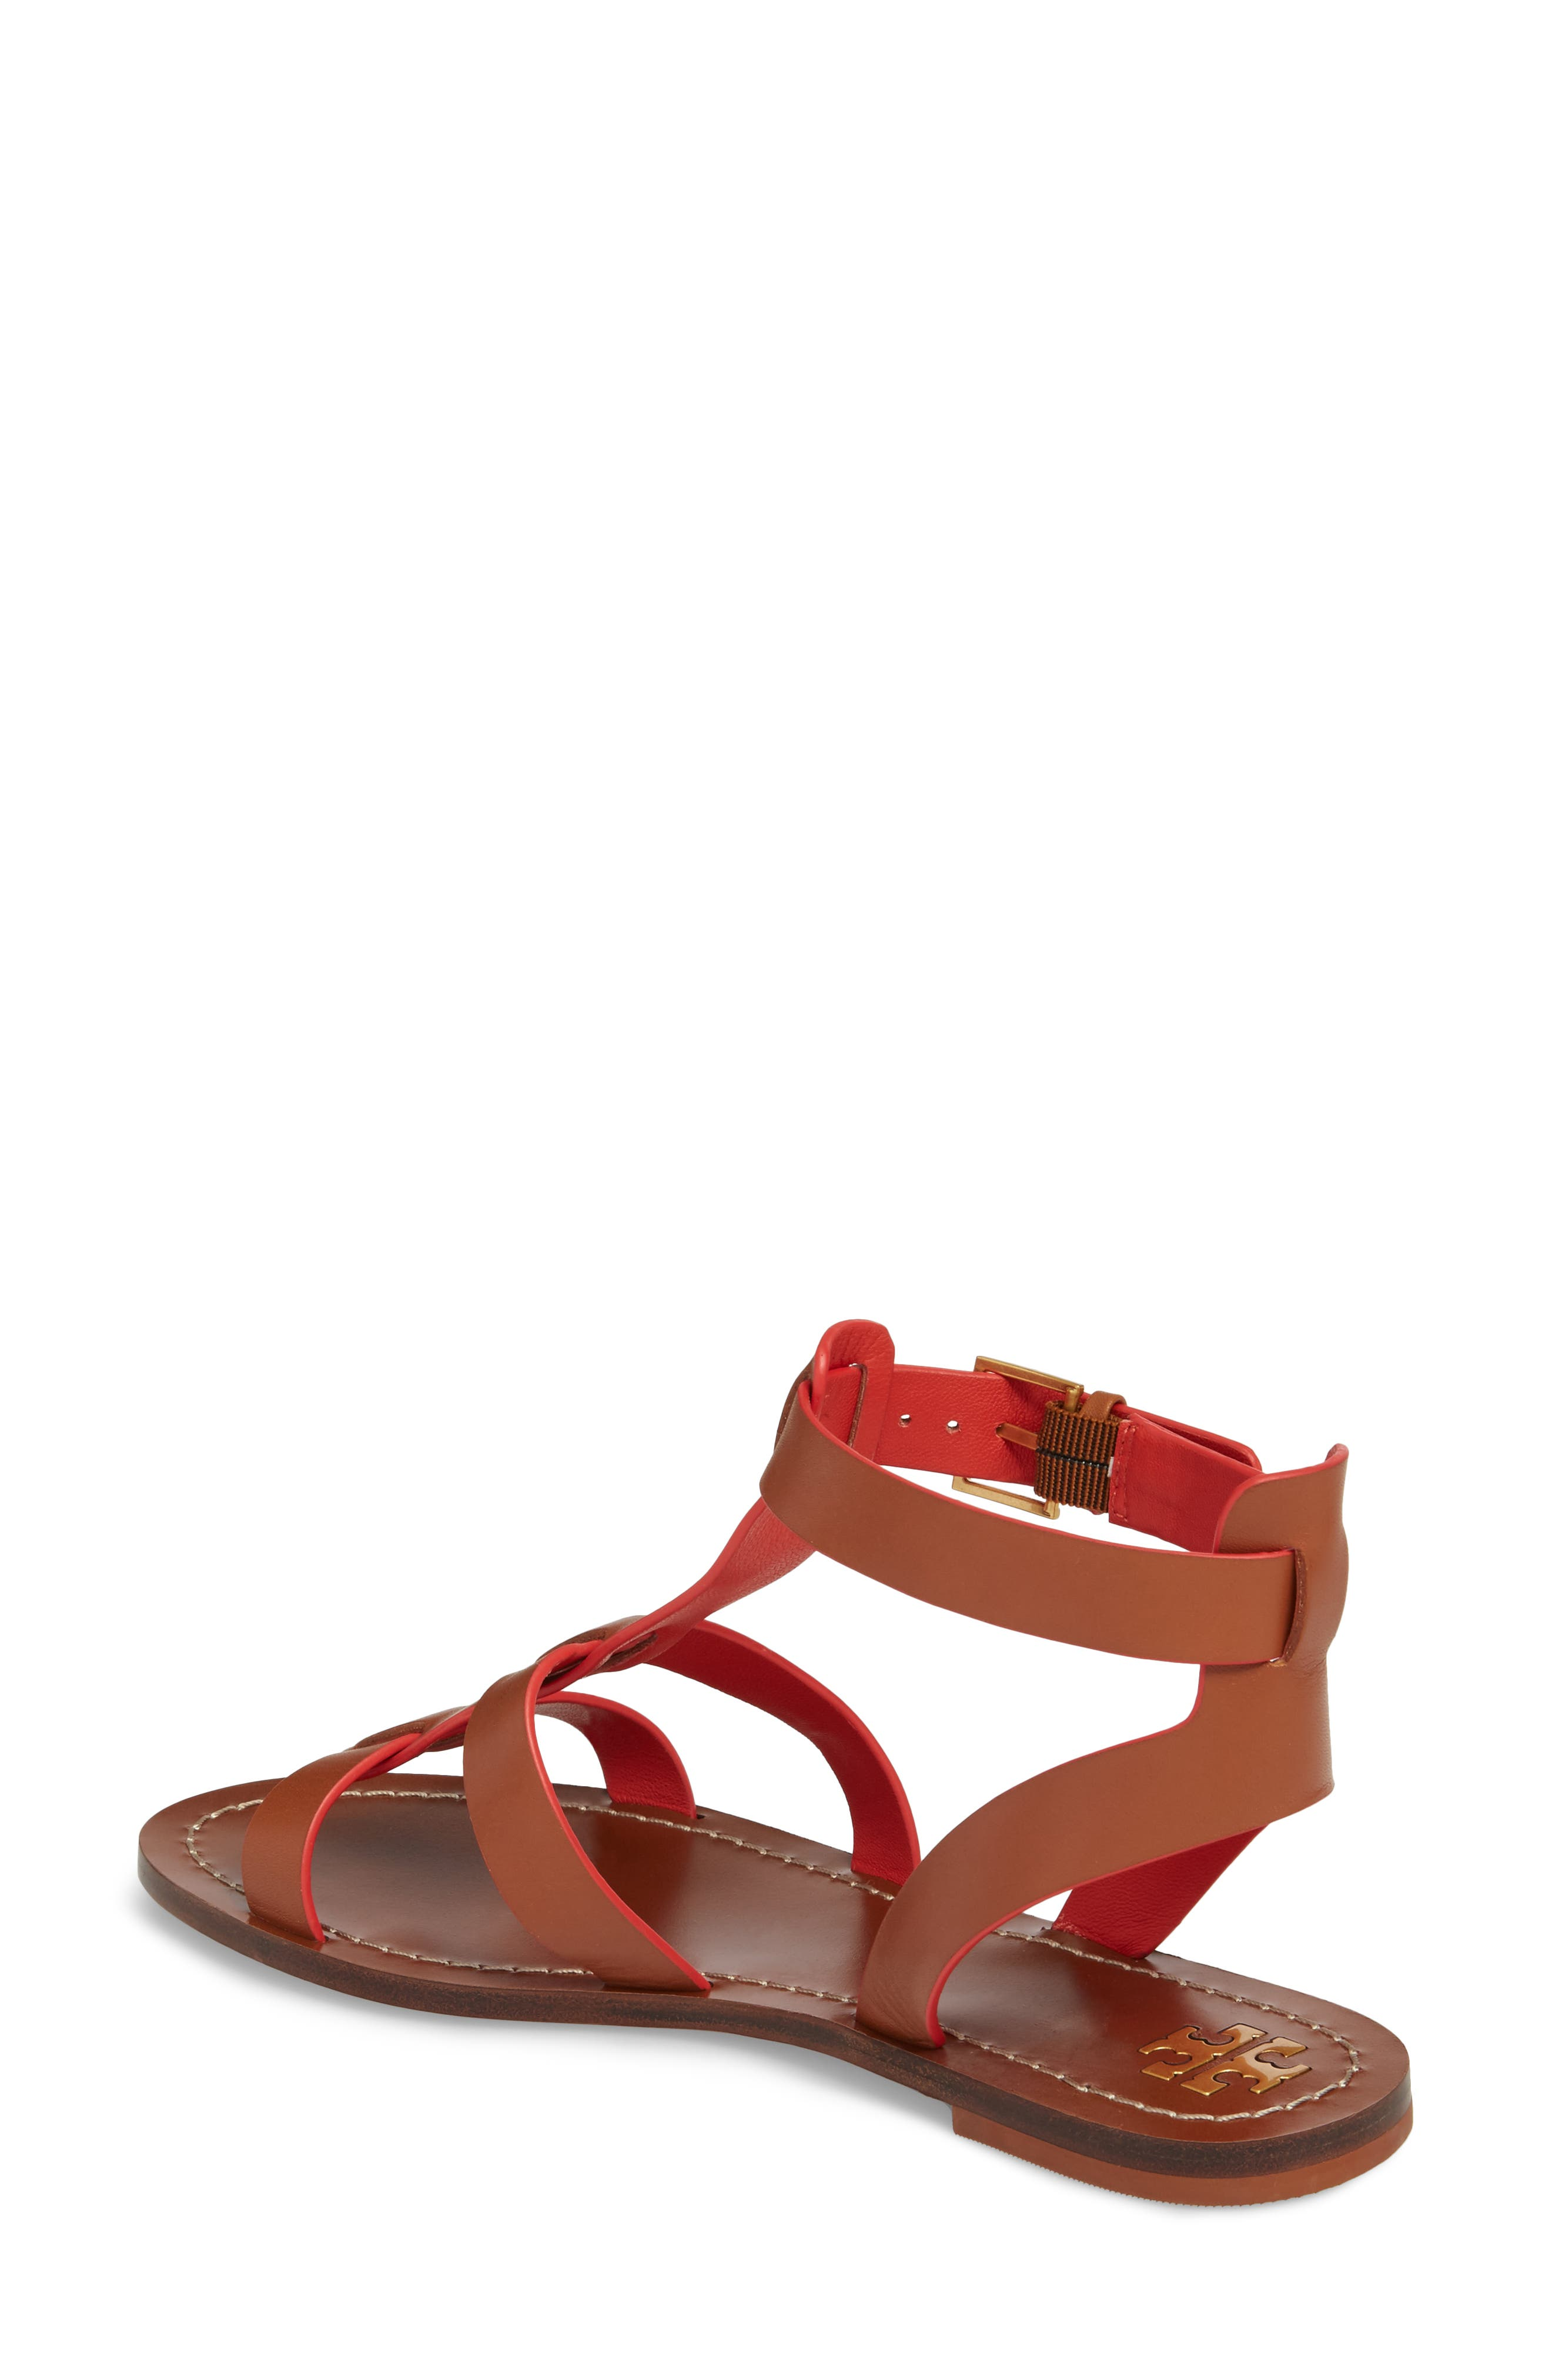 Patos Gladiator Sandal,                             Alternate thumbnail 2, color,                             Perfect Cuoio